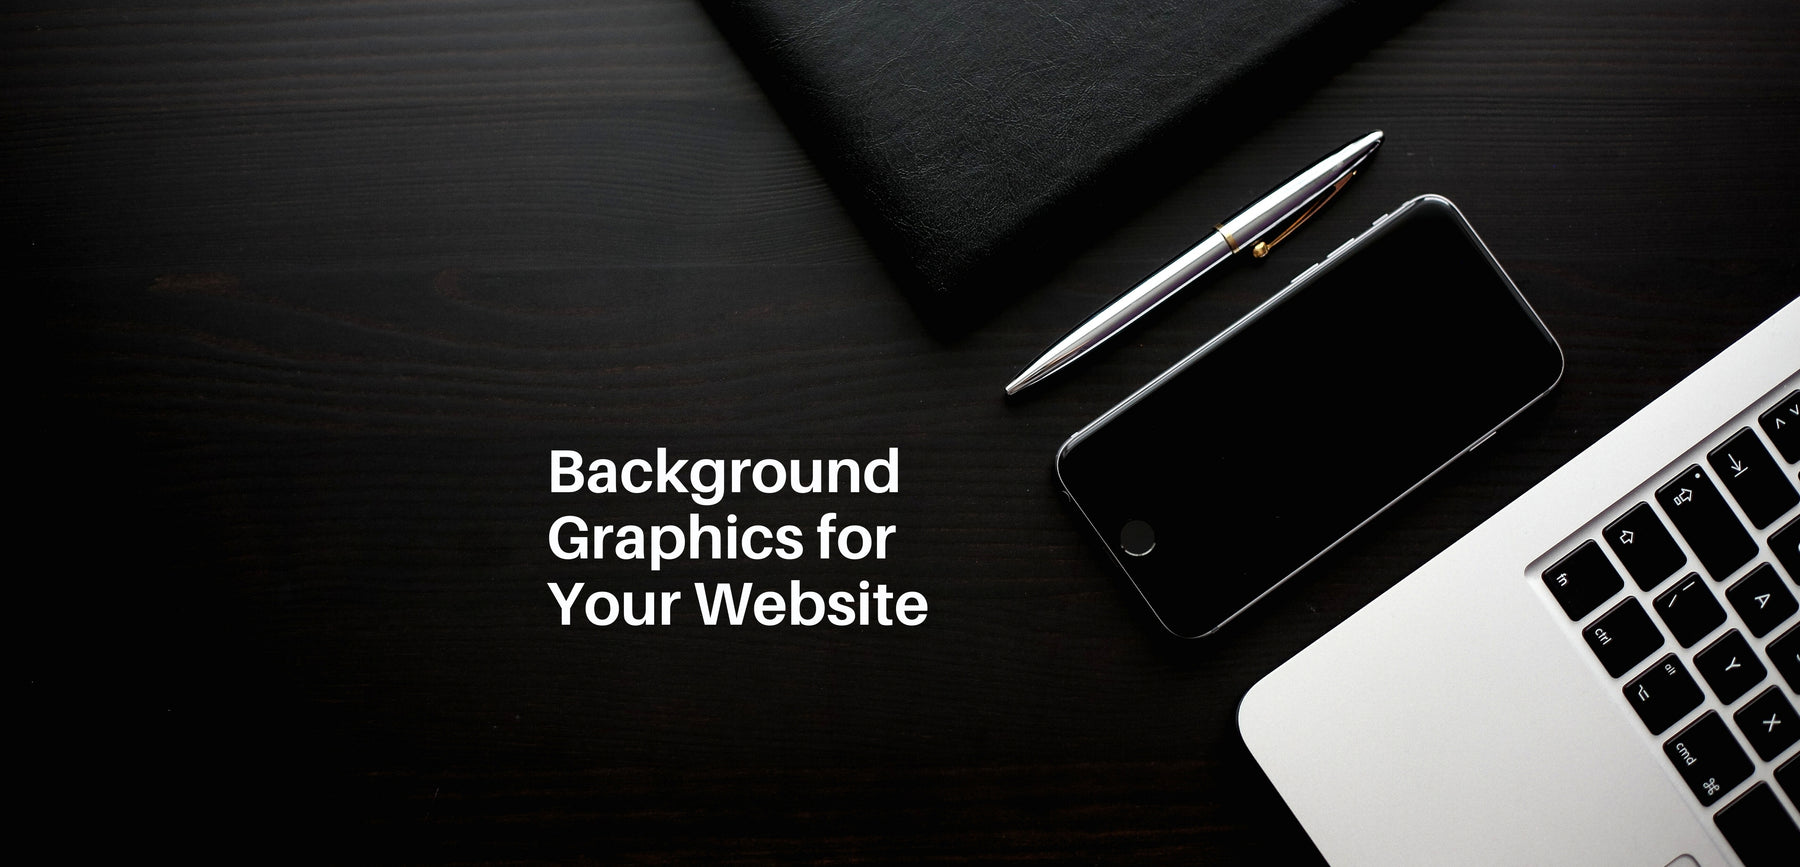 5 Tips for Choosing High Quality Background Graphics for Your Website